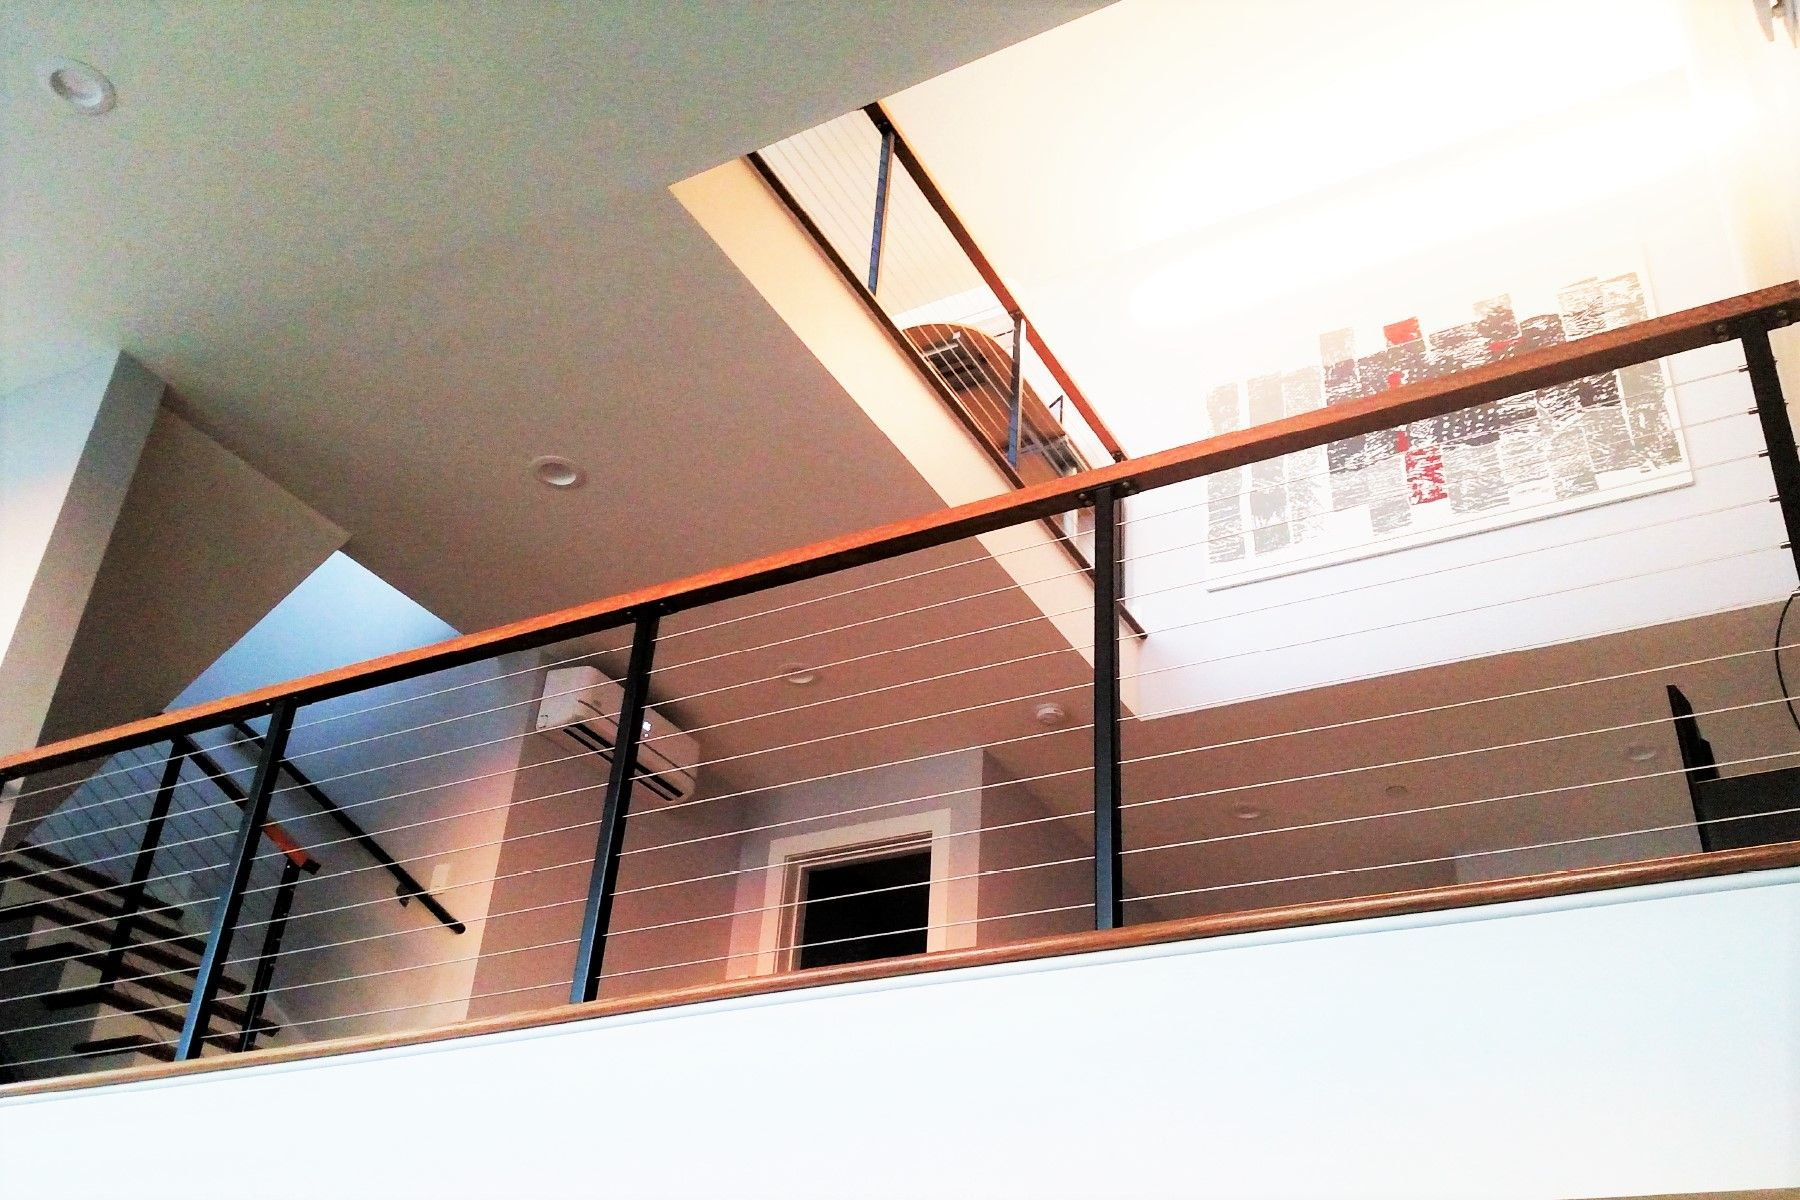 Stainless Steel Cable Railing For Sale This Wire Cable Railing